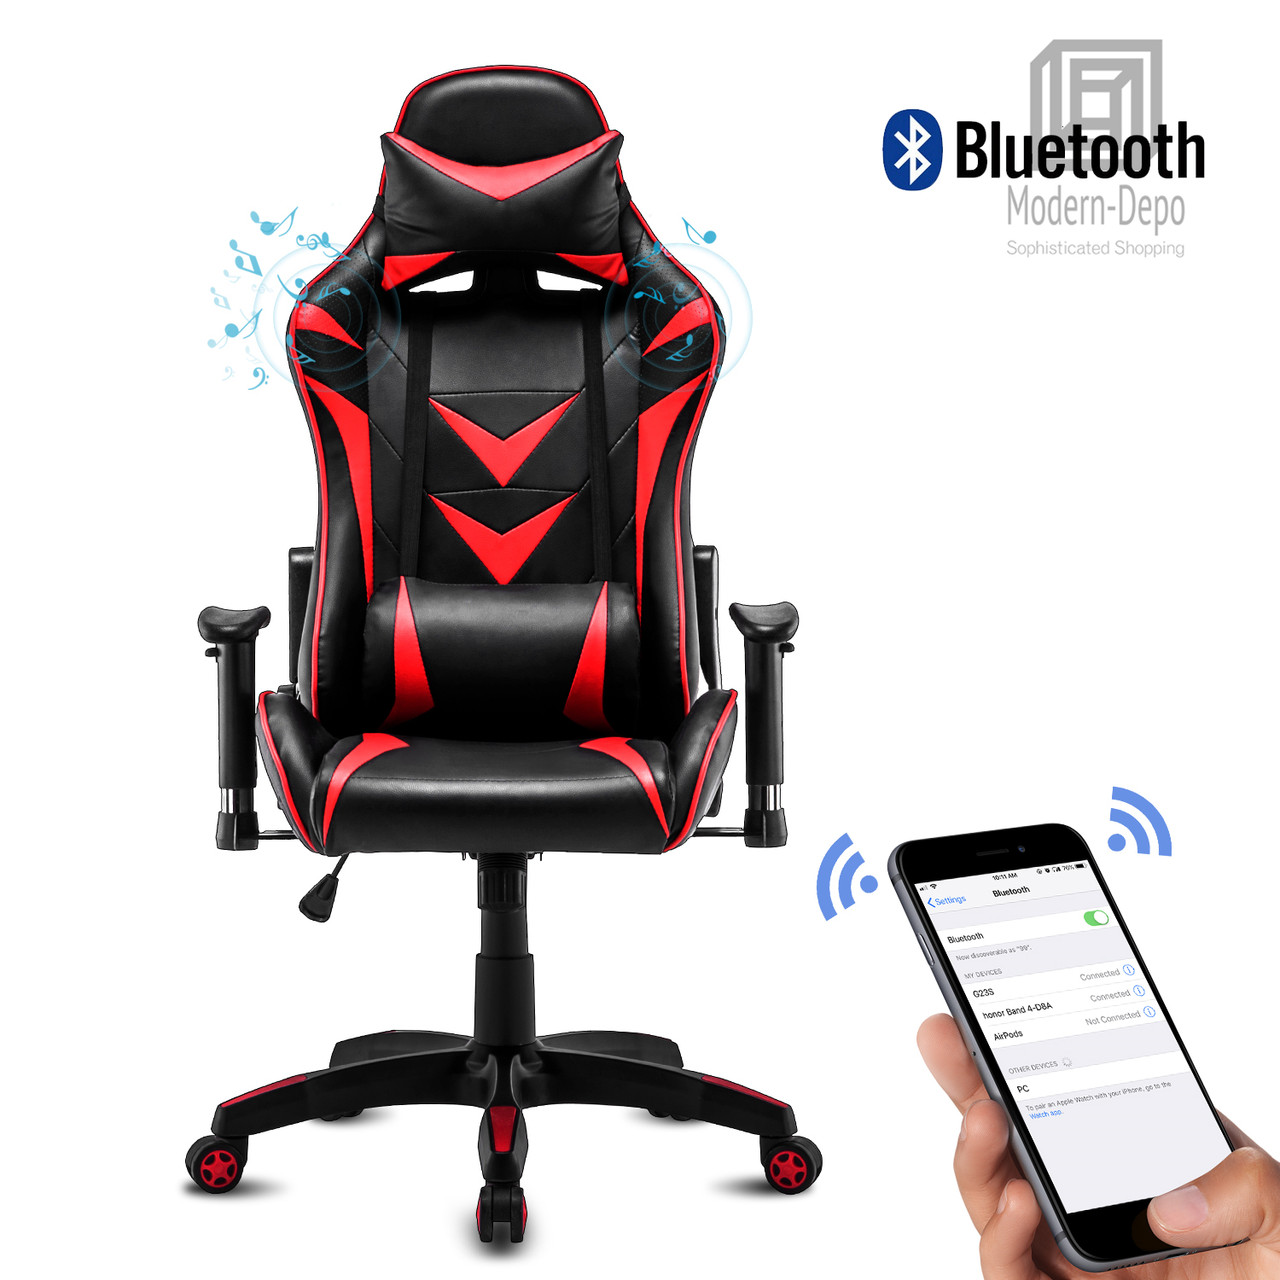 Collections Of V1 Gaming Chair Hinno Klima Servis Dining